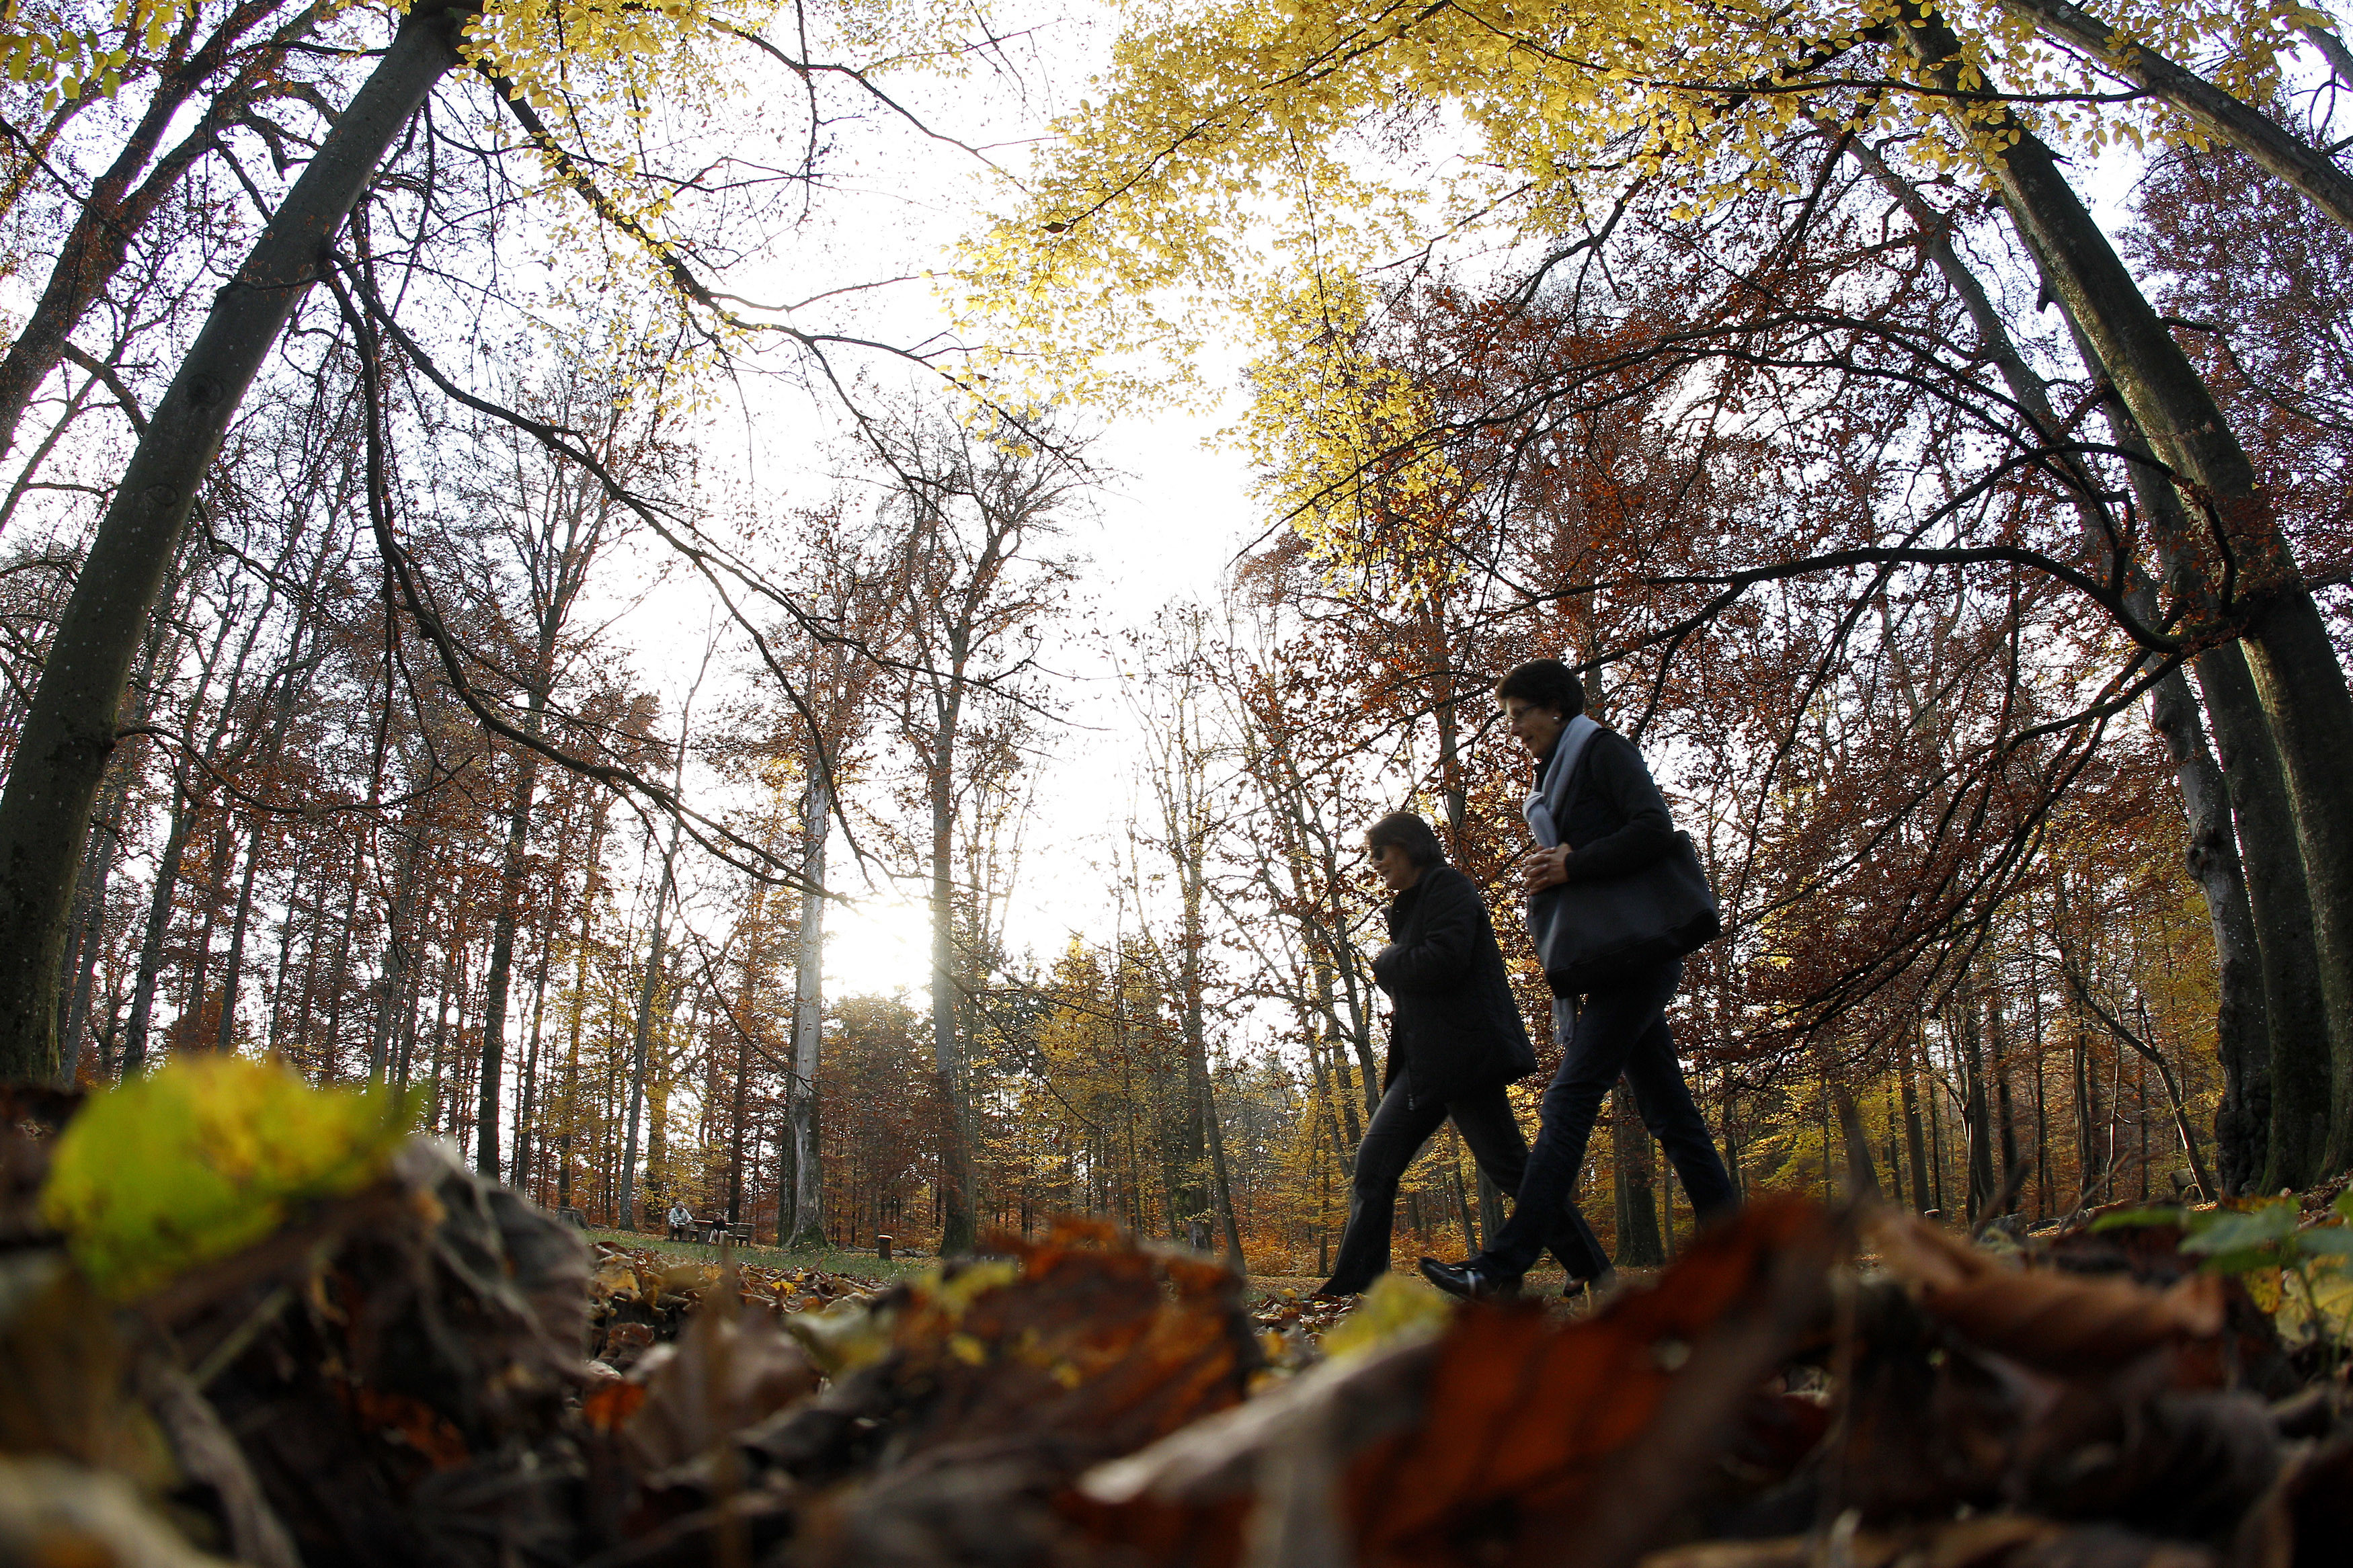 Women enjoy a walk on a leaf-covered path on a sunny and mild autumn afternoon in a forest